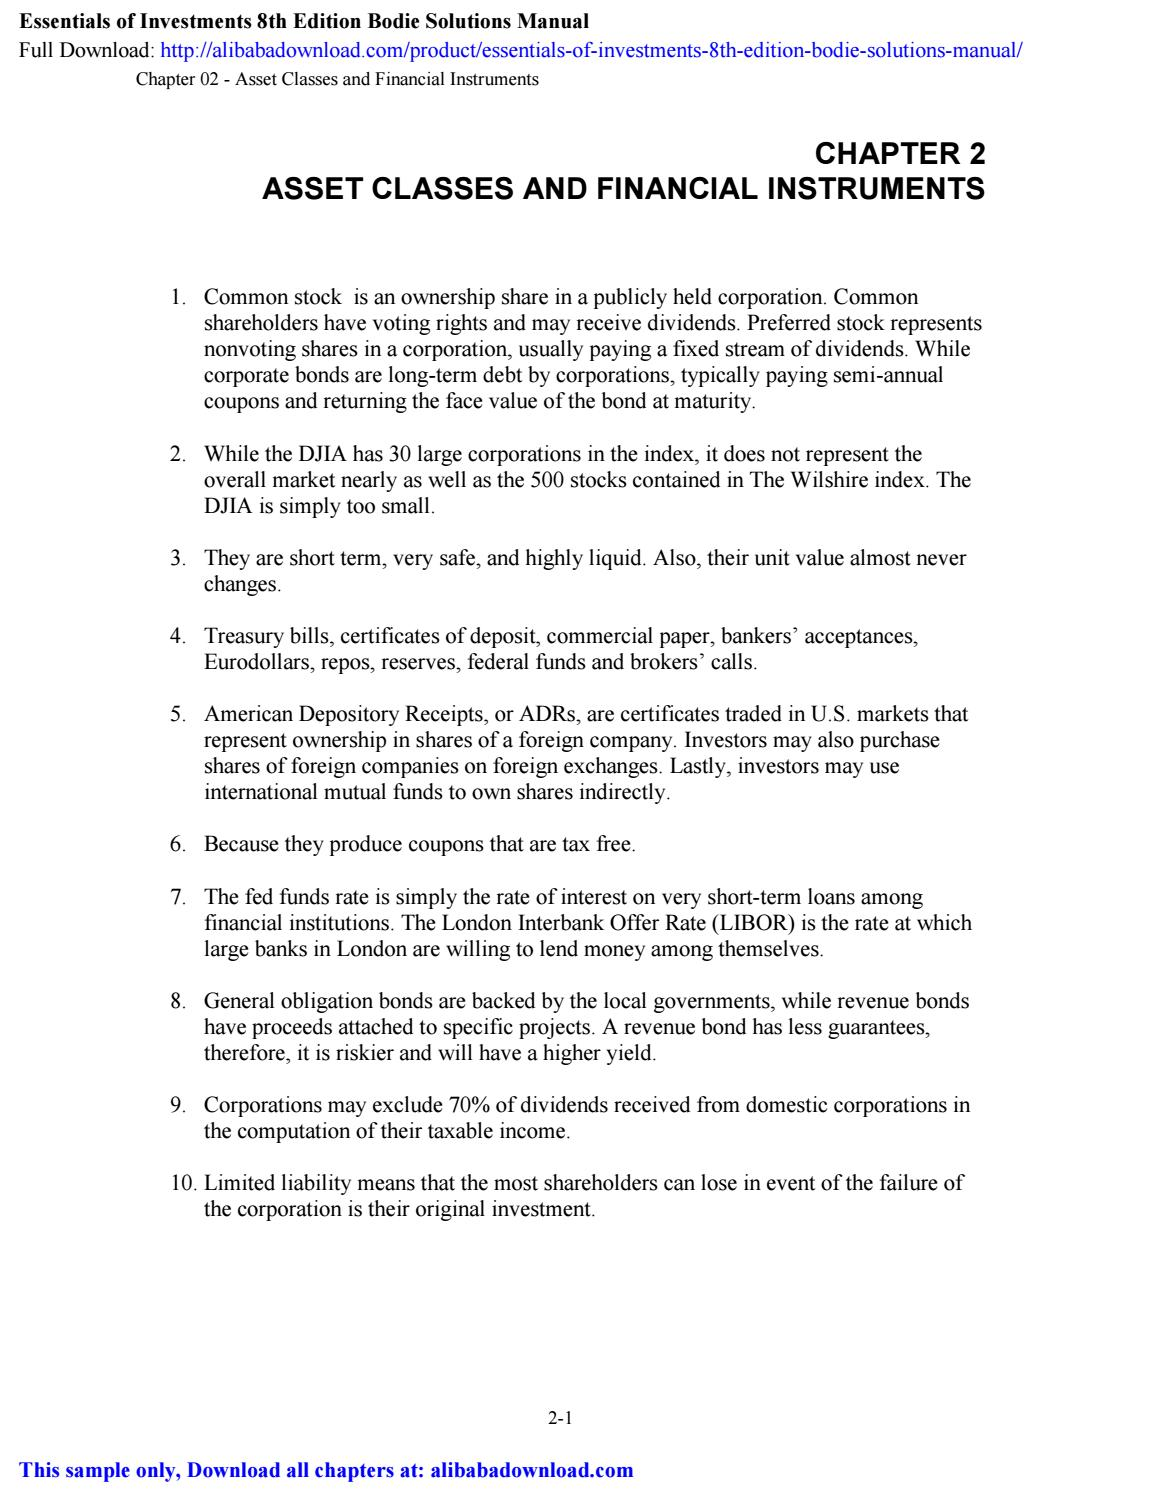 Essentials Of Investments 8th Edition Bodie Solutions Manual By Julie Issuu